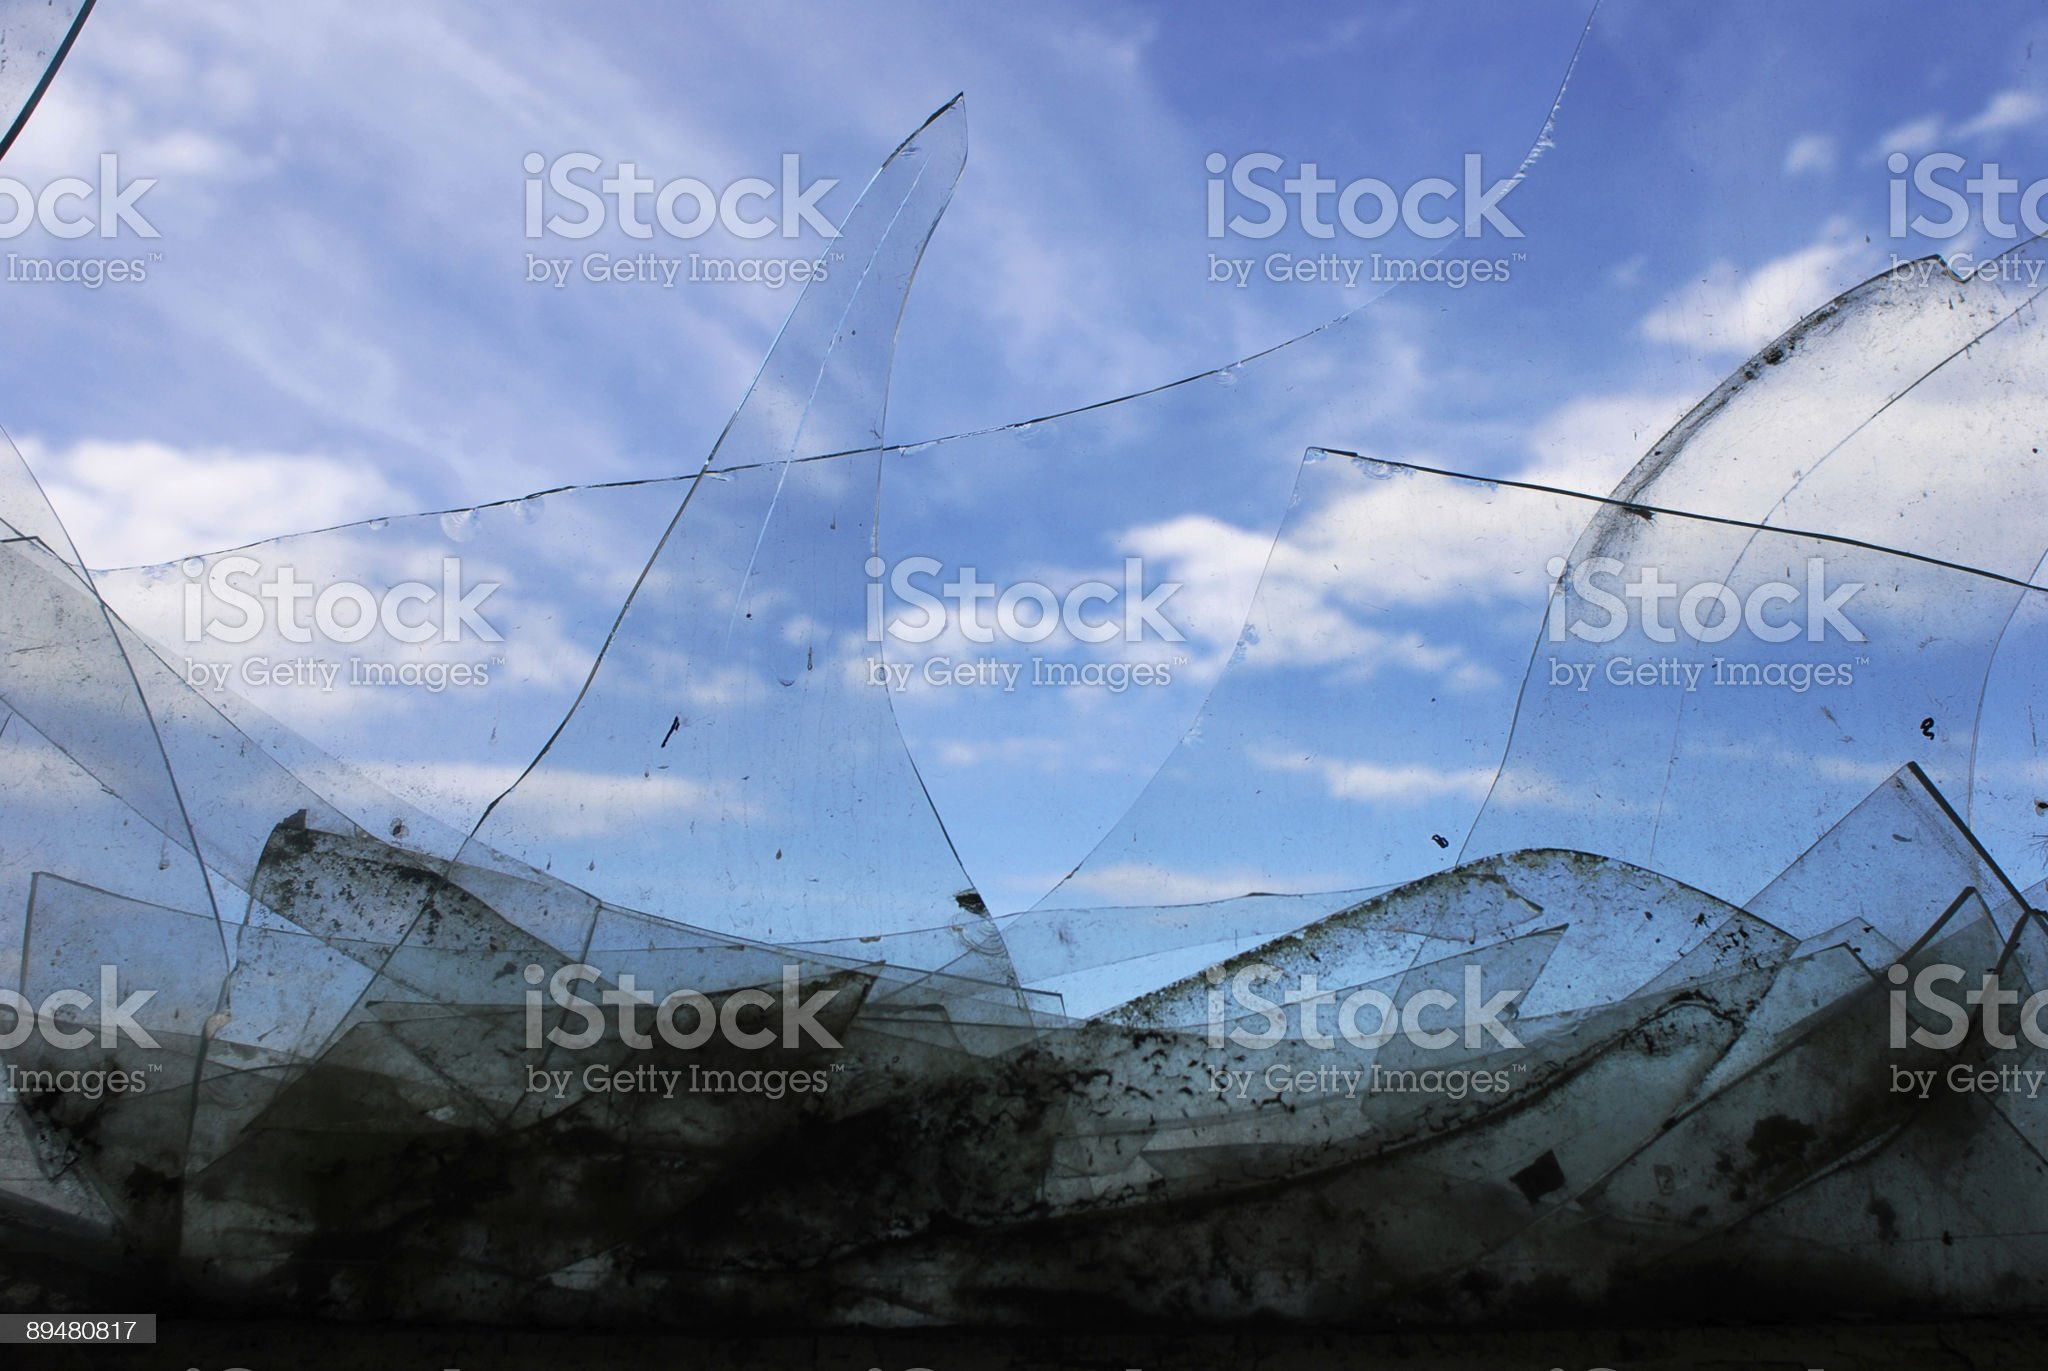 Broken glass. royalty-free stock photo